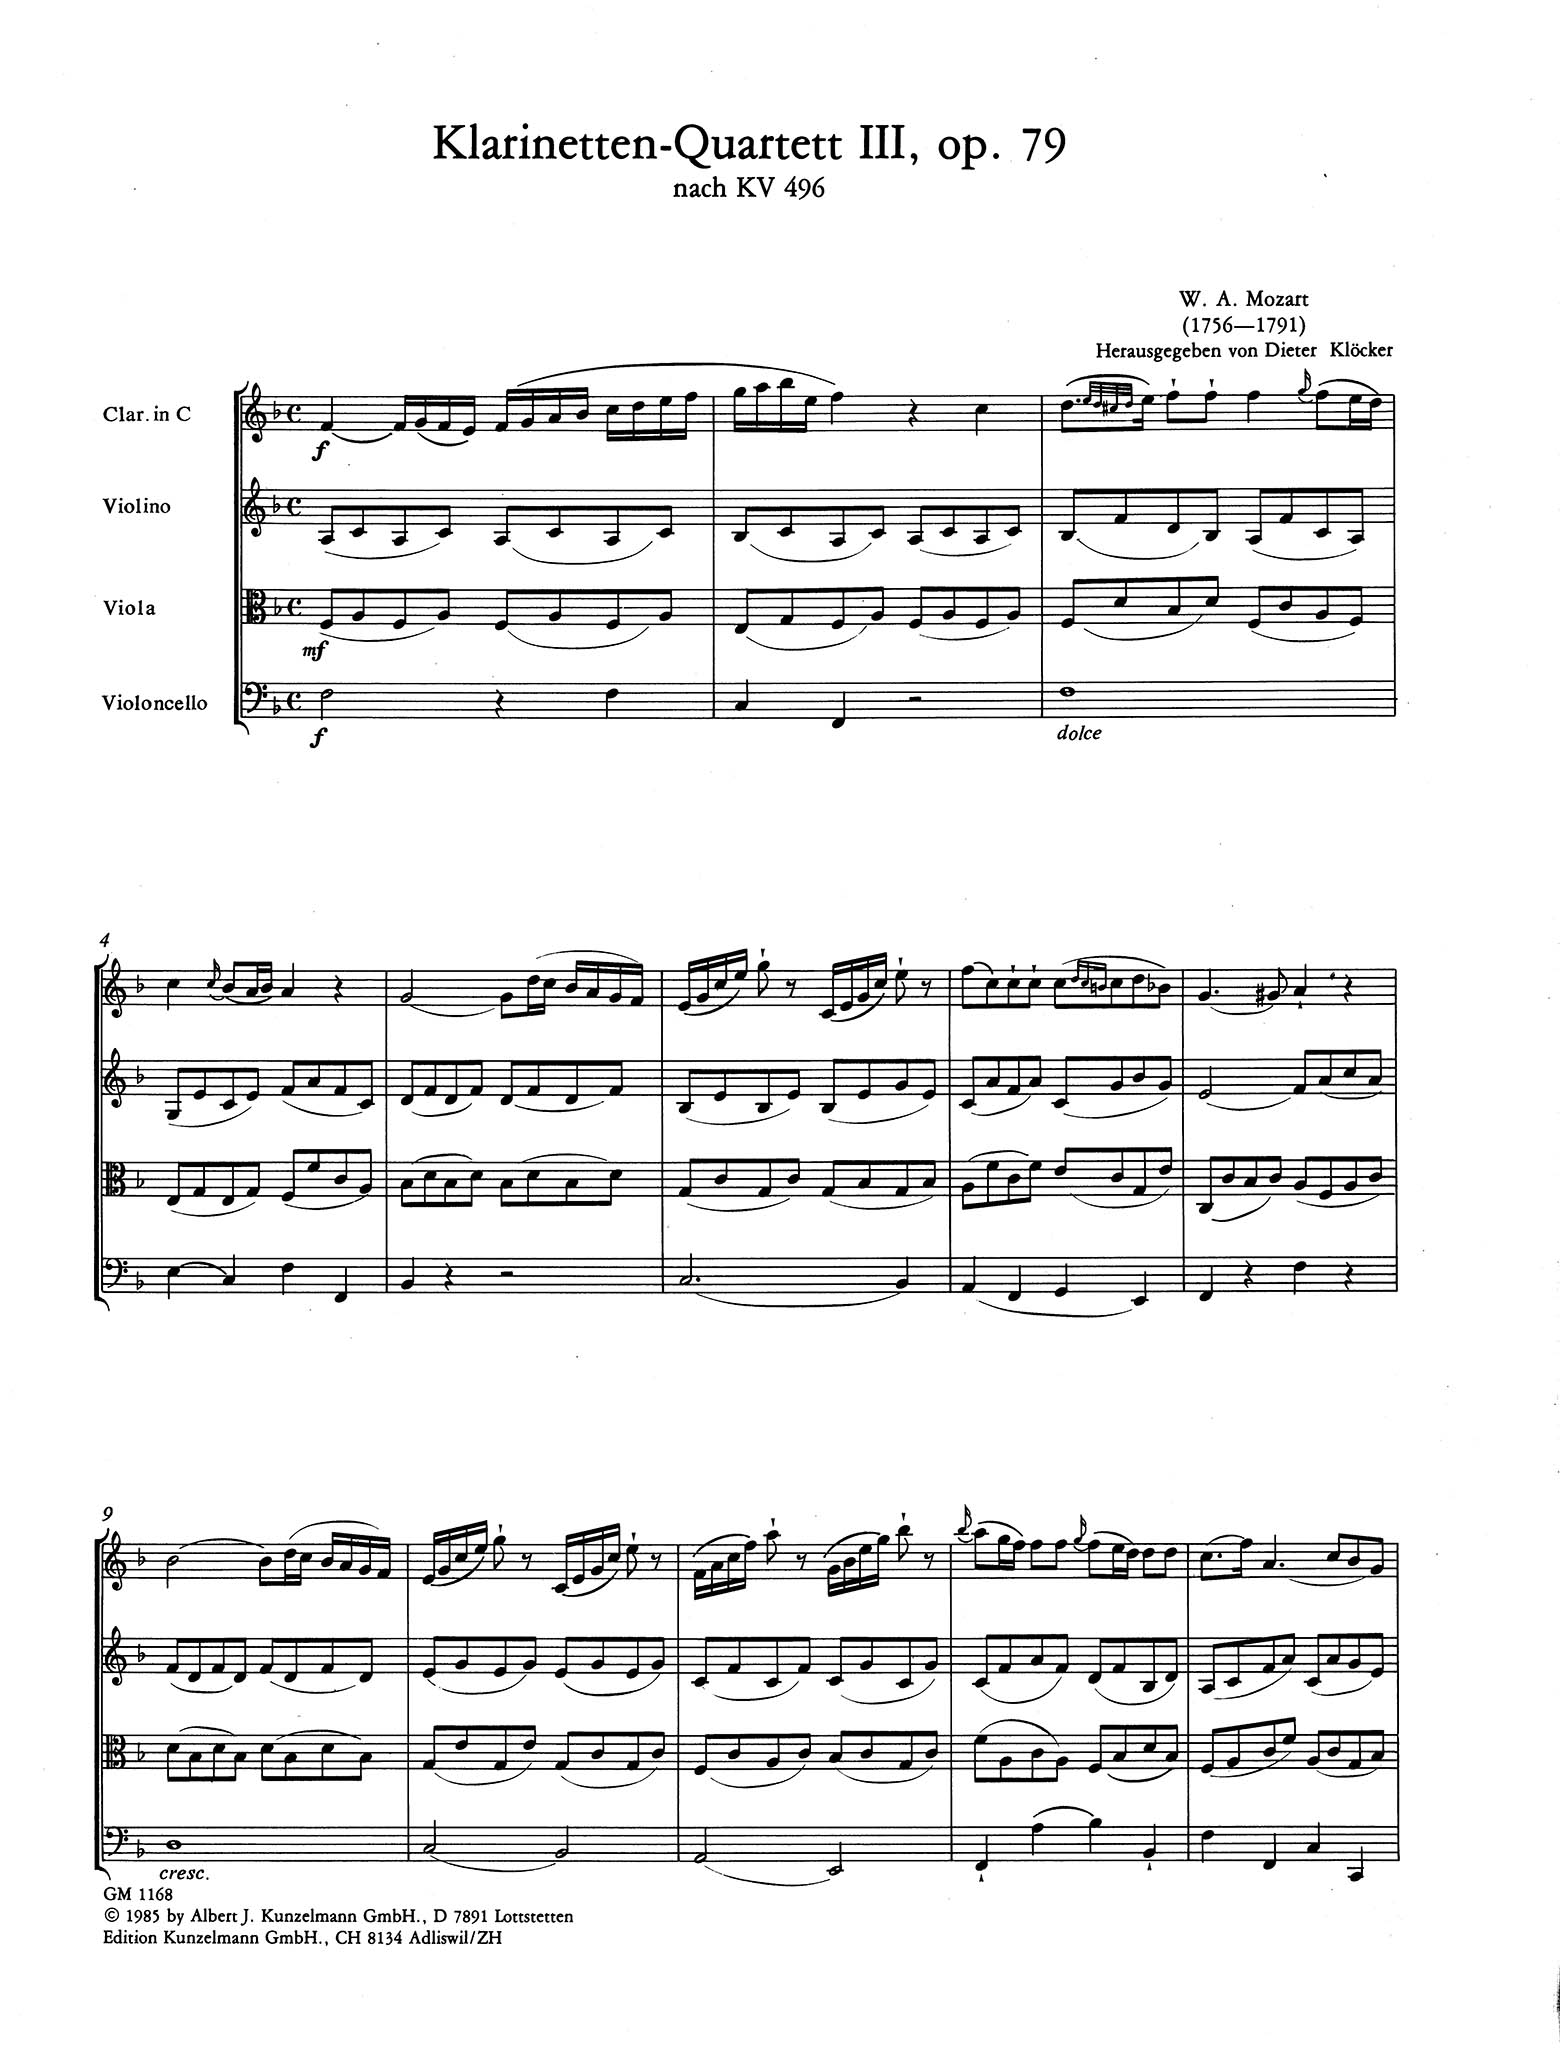 Piano Trio No. 1 in G Major, K. 496 - Movement 1